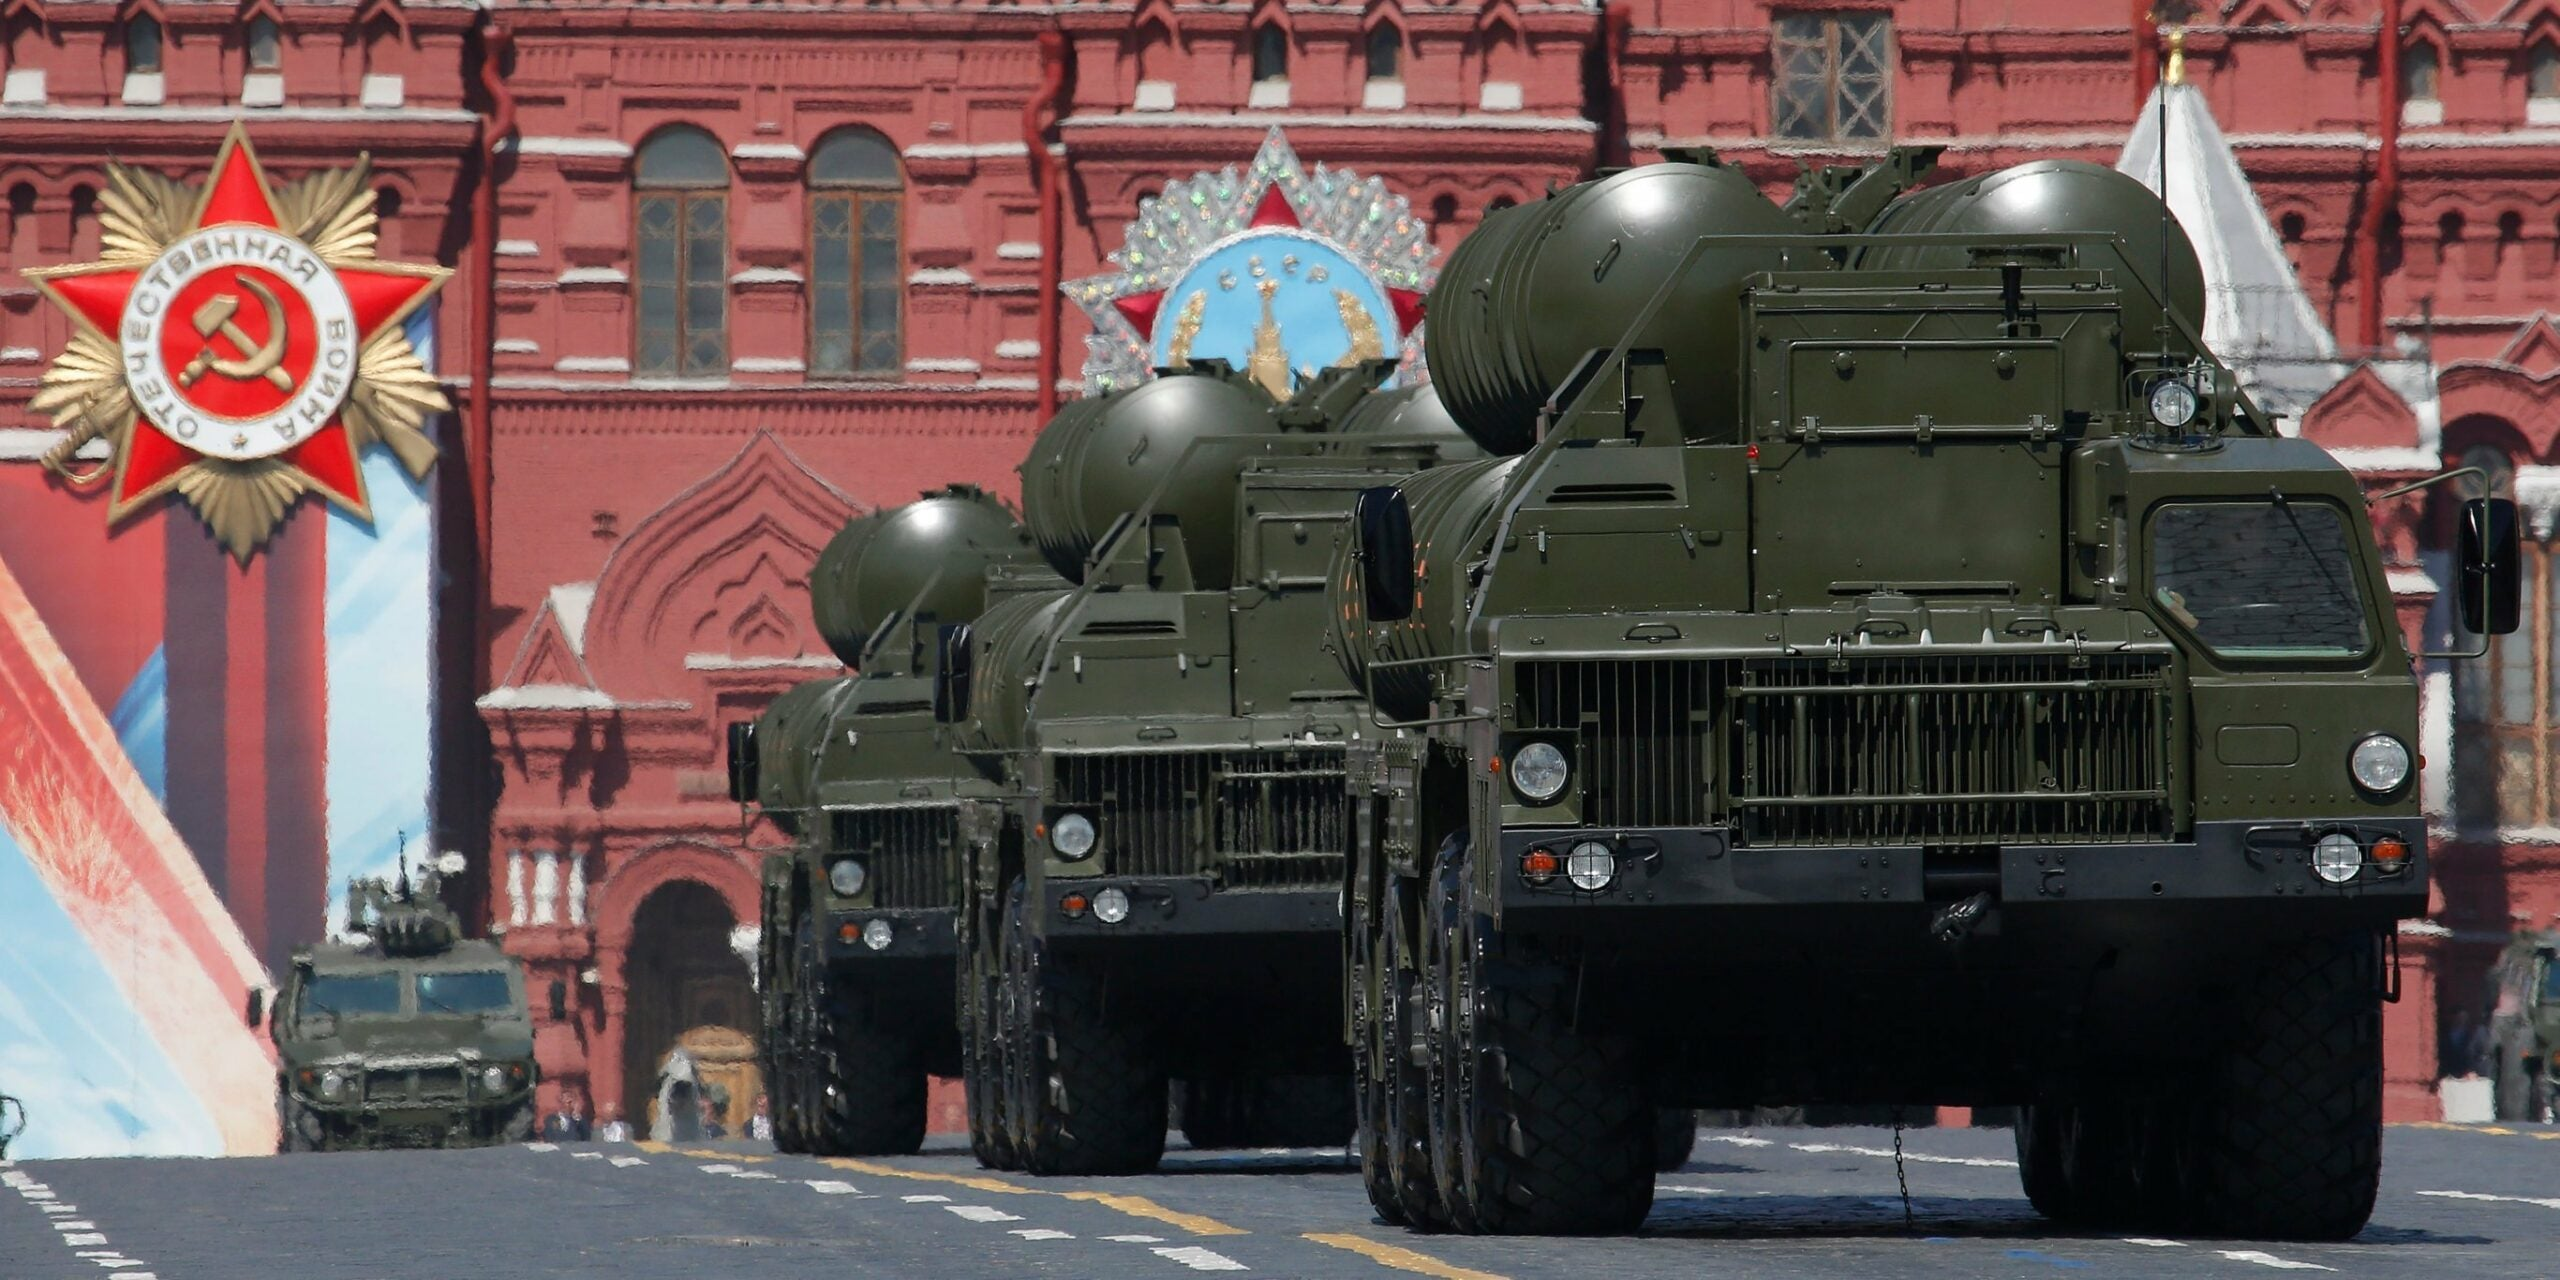 Russia tried to send its most advanced air defense system to China last year. Then a storm got in the way